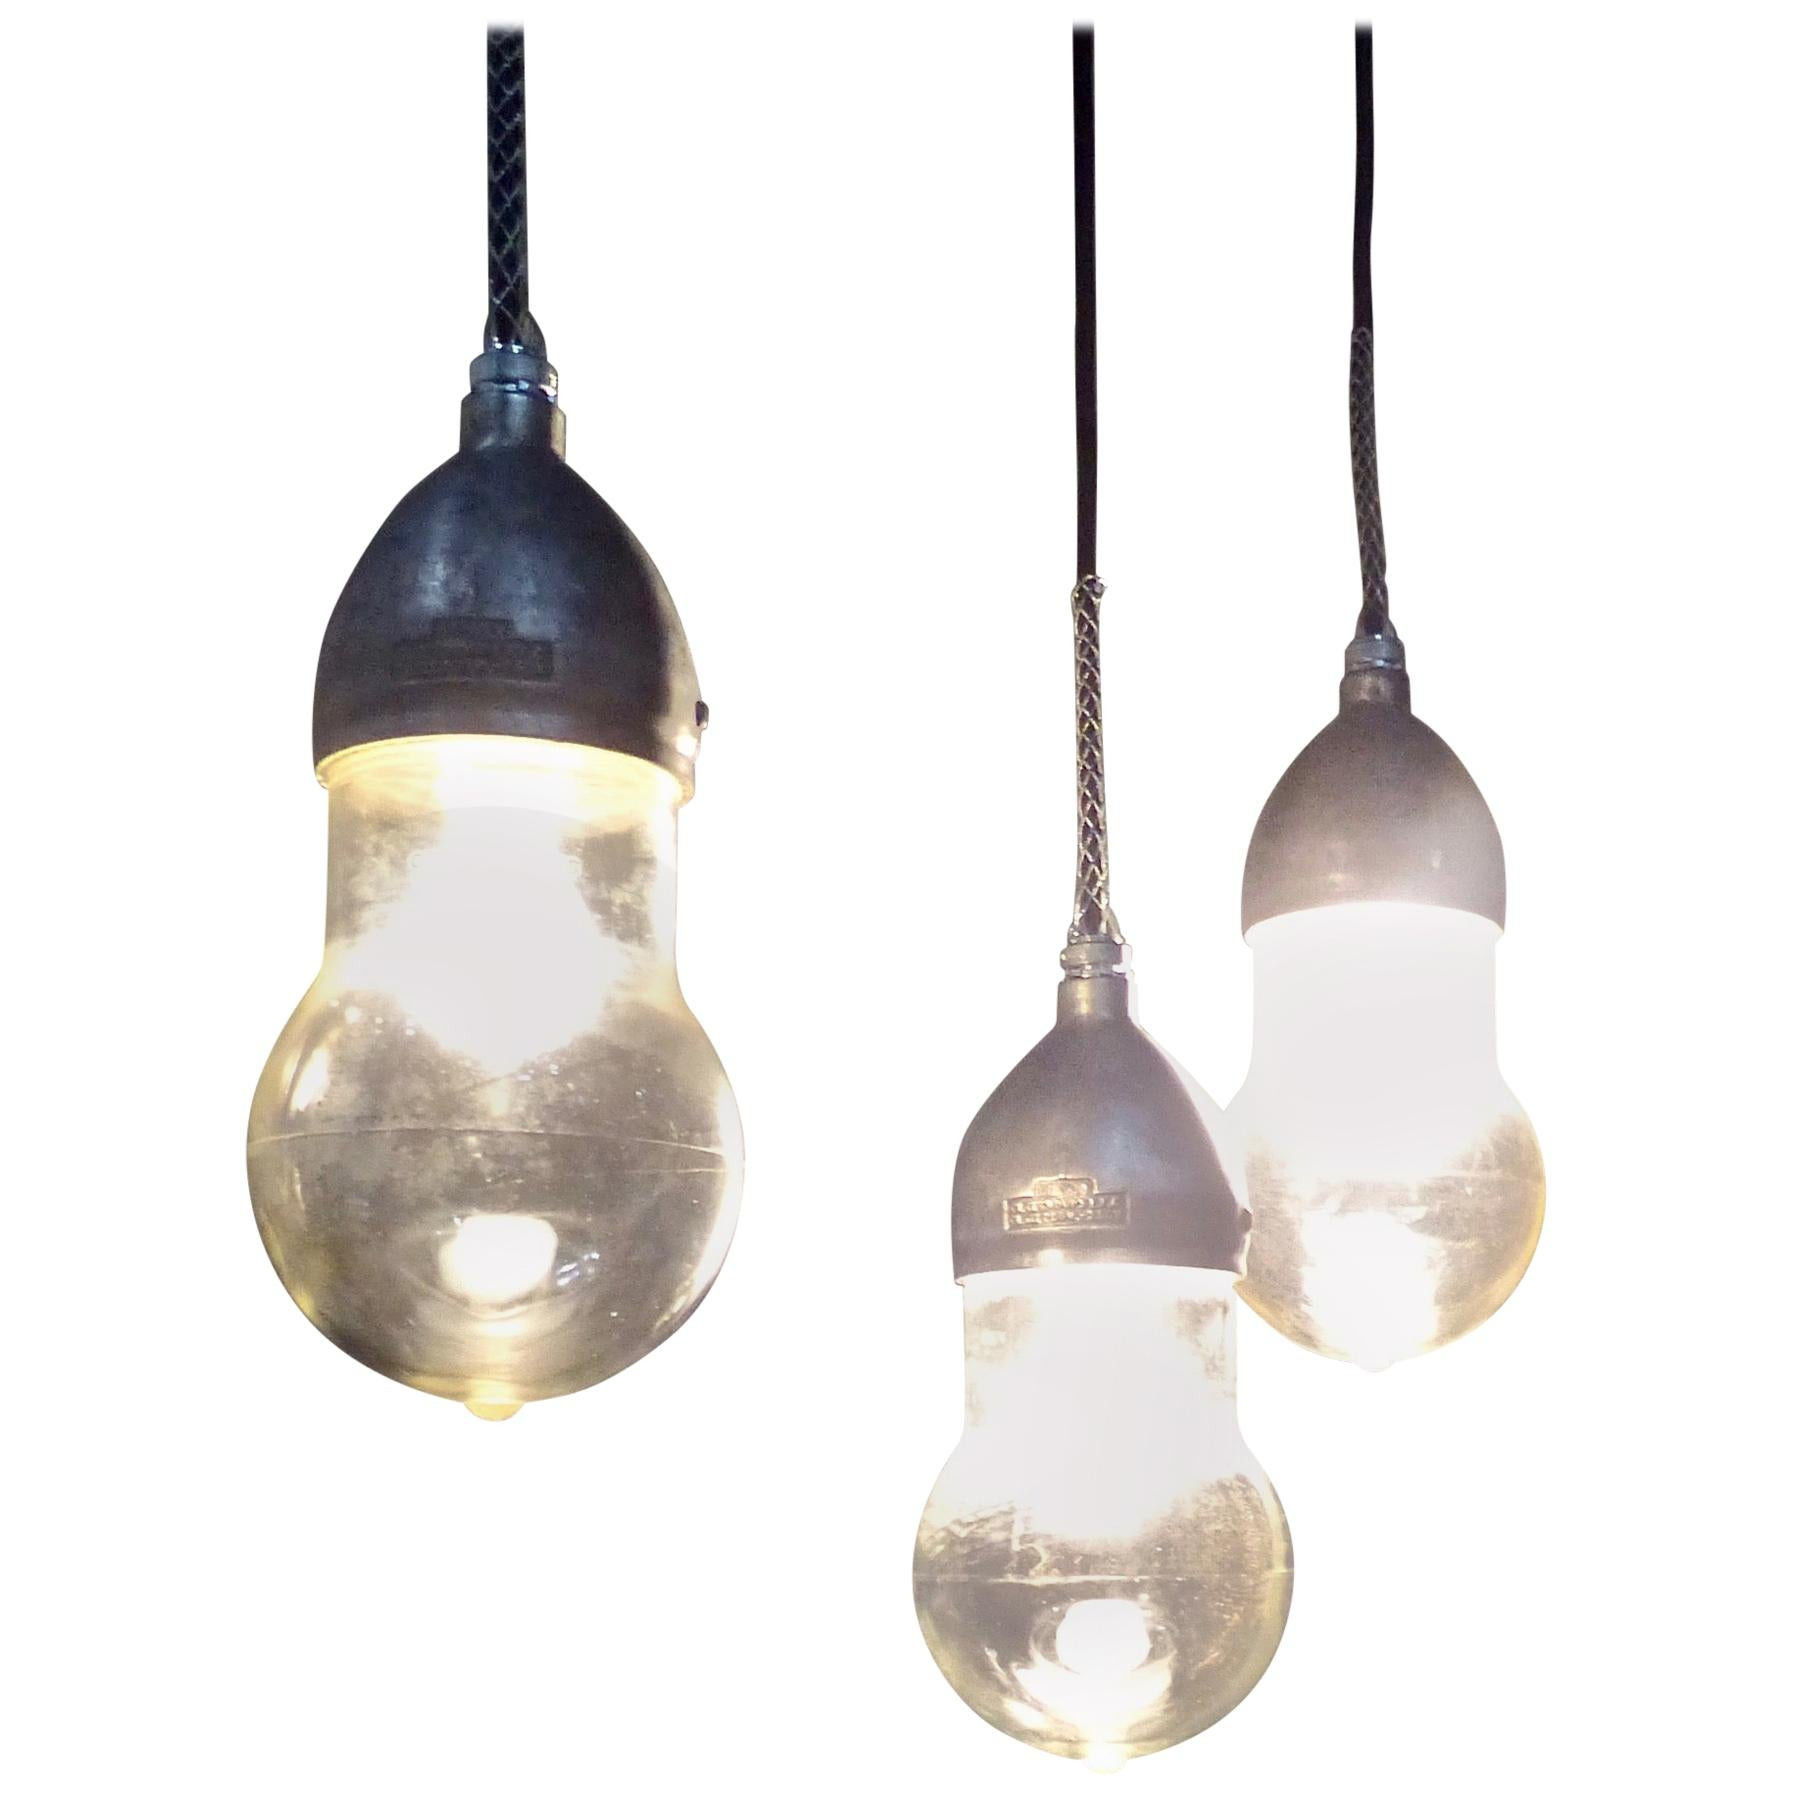 1930 Crouse Hinds Industrial Pendants Lights with 'Teardrop' Shades